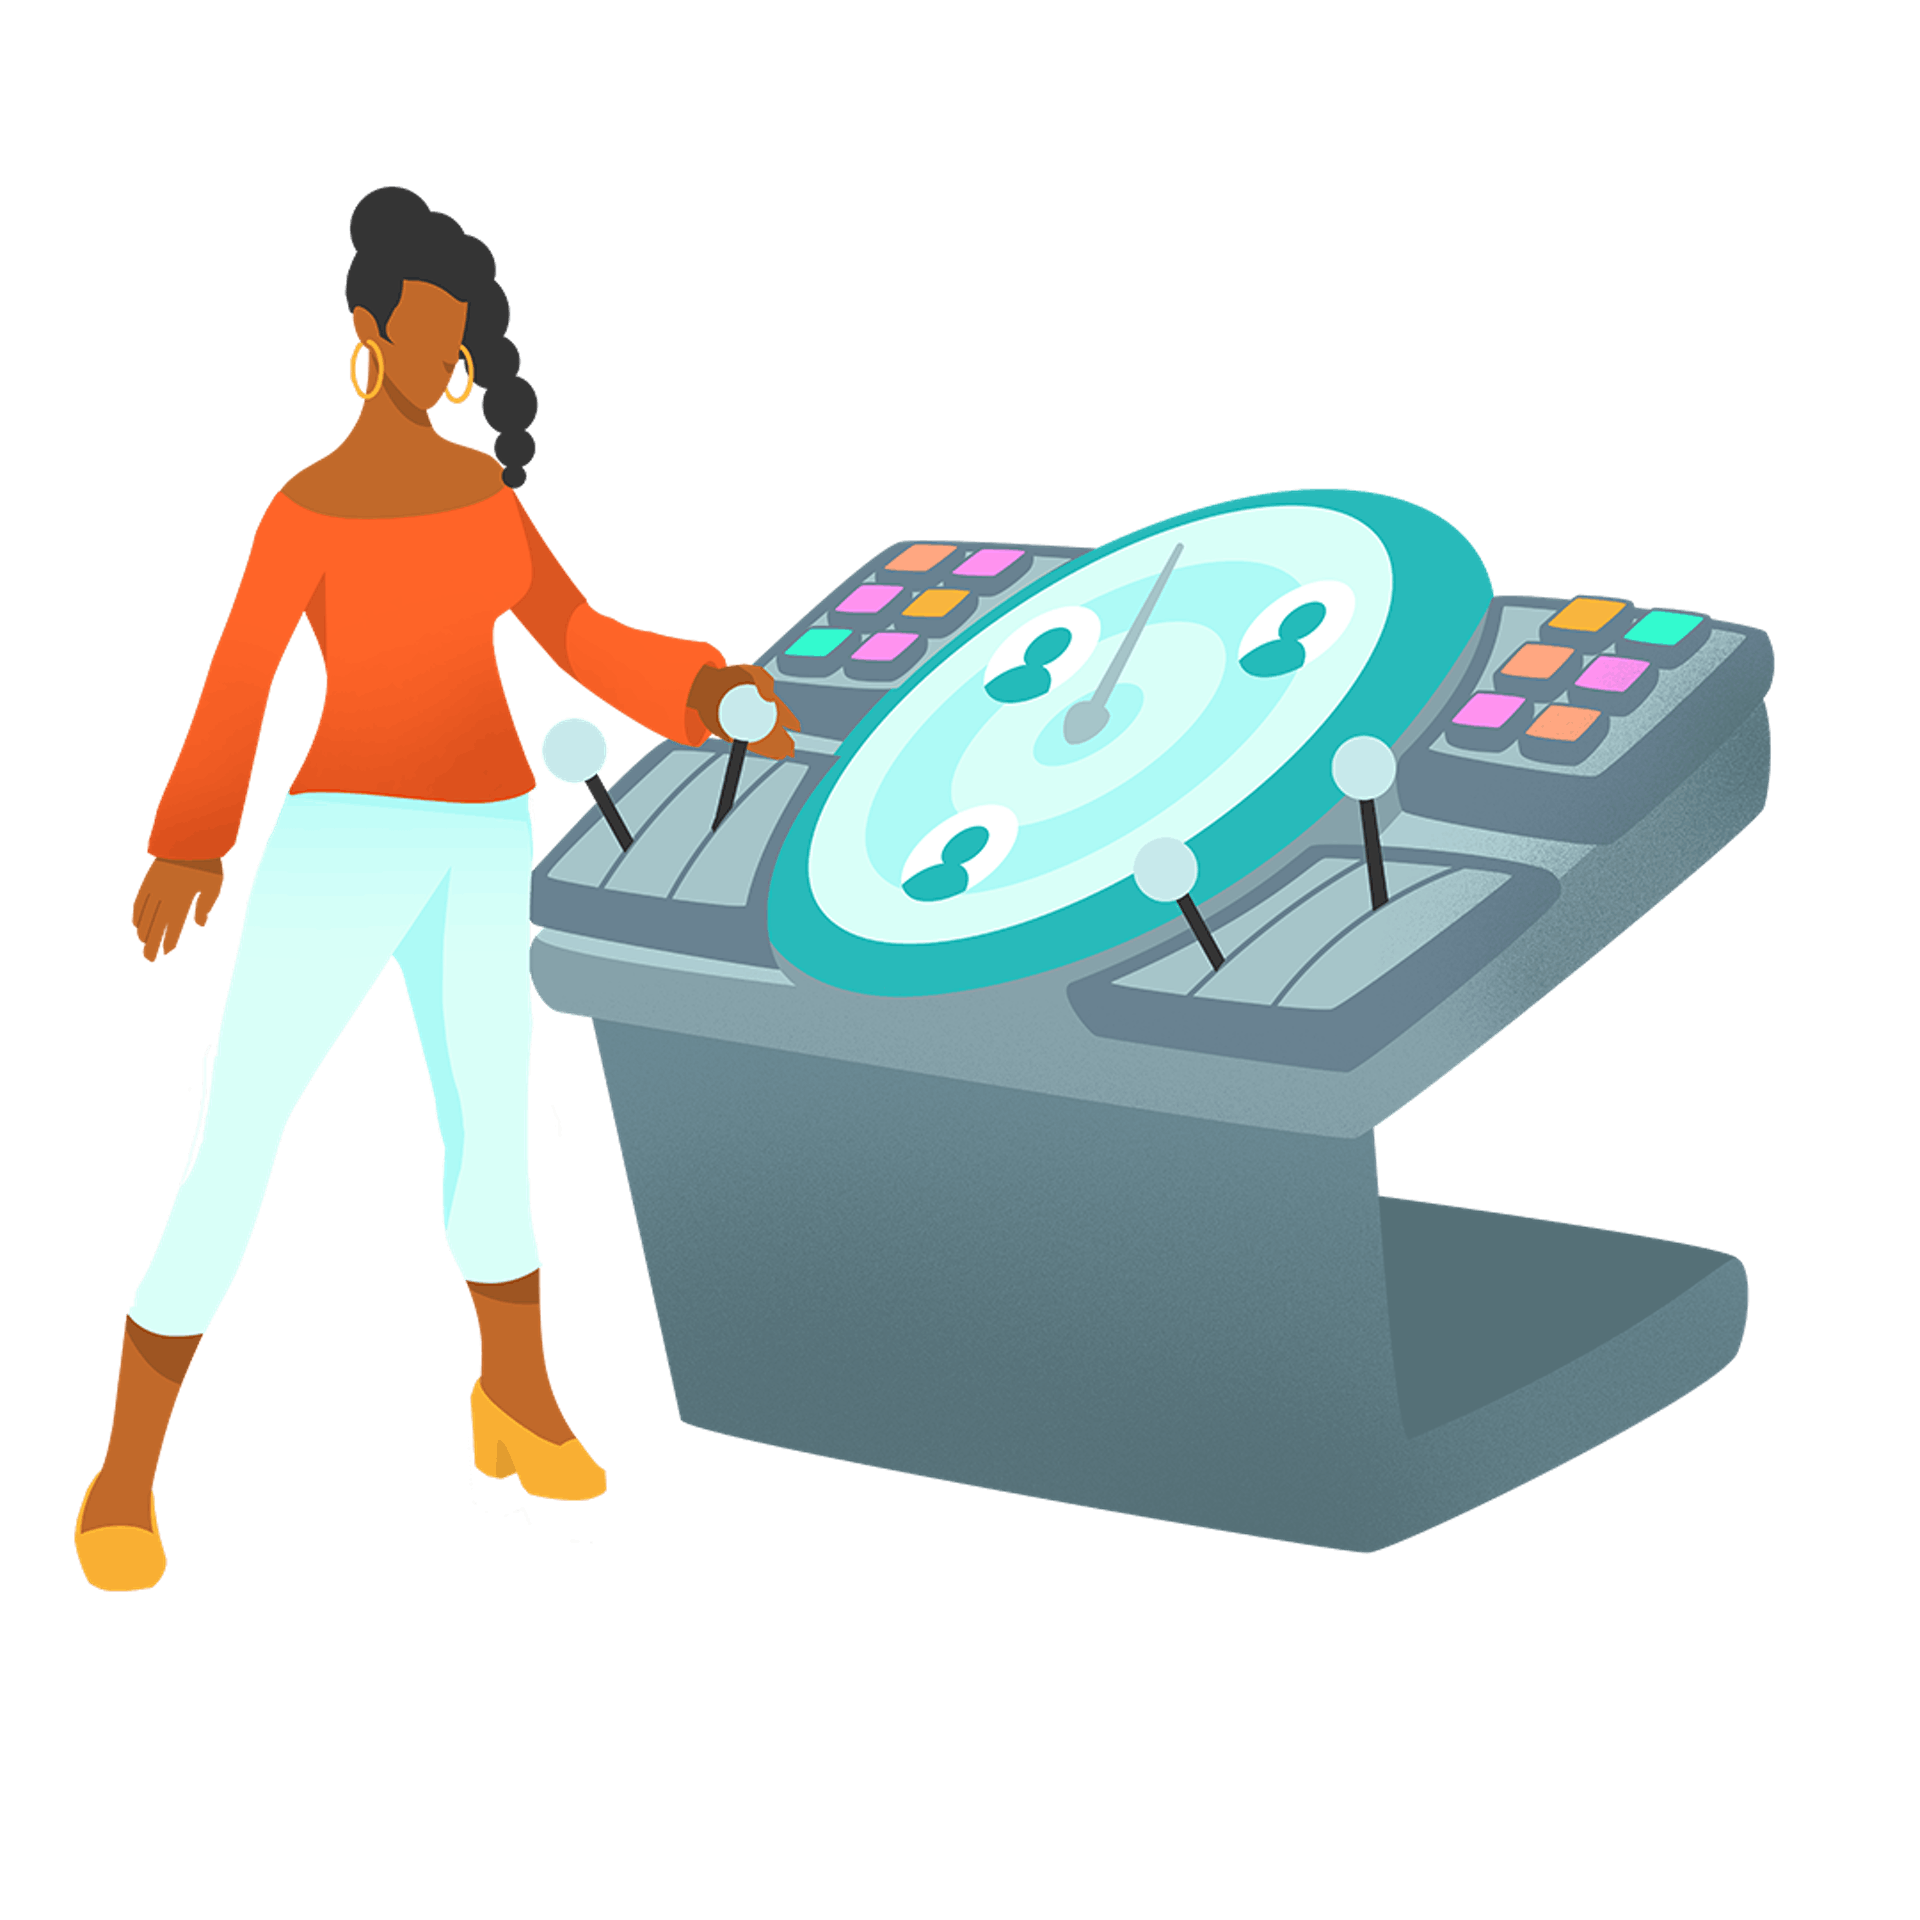 Graphic illustration of woman with a controller